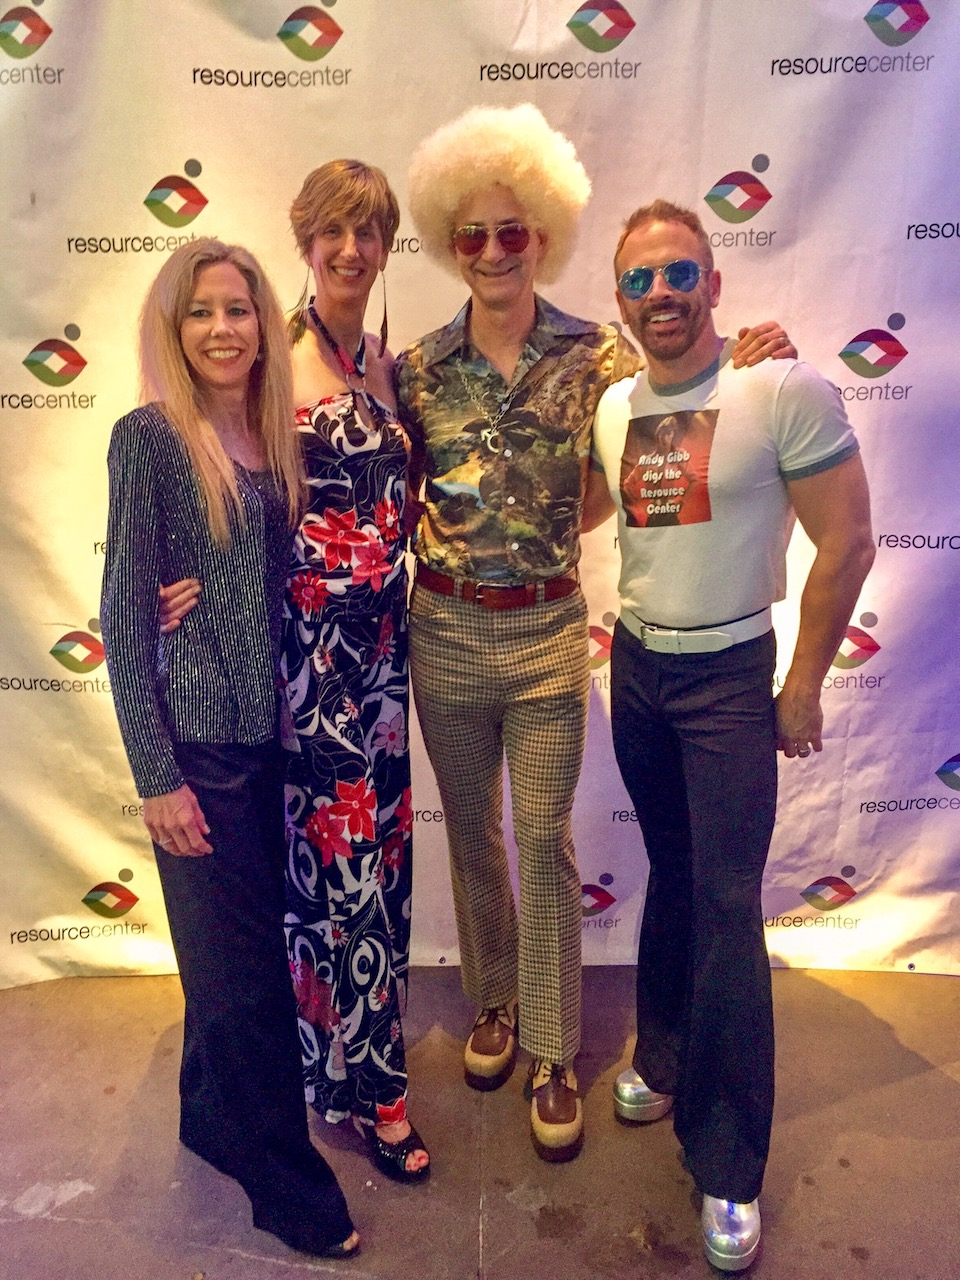 Atkinson, second from right, with friends at the 2017 Toast to Life fundraising event for Resource Center, which has raised over $200,000 every year for LGBTQ HIV/AIDS services.